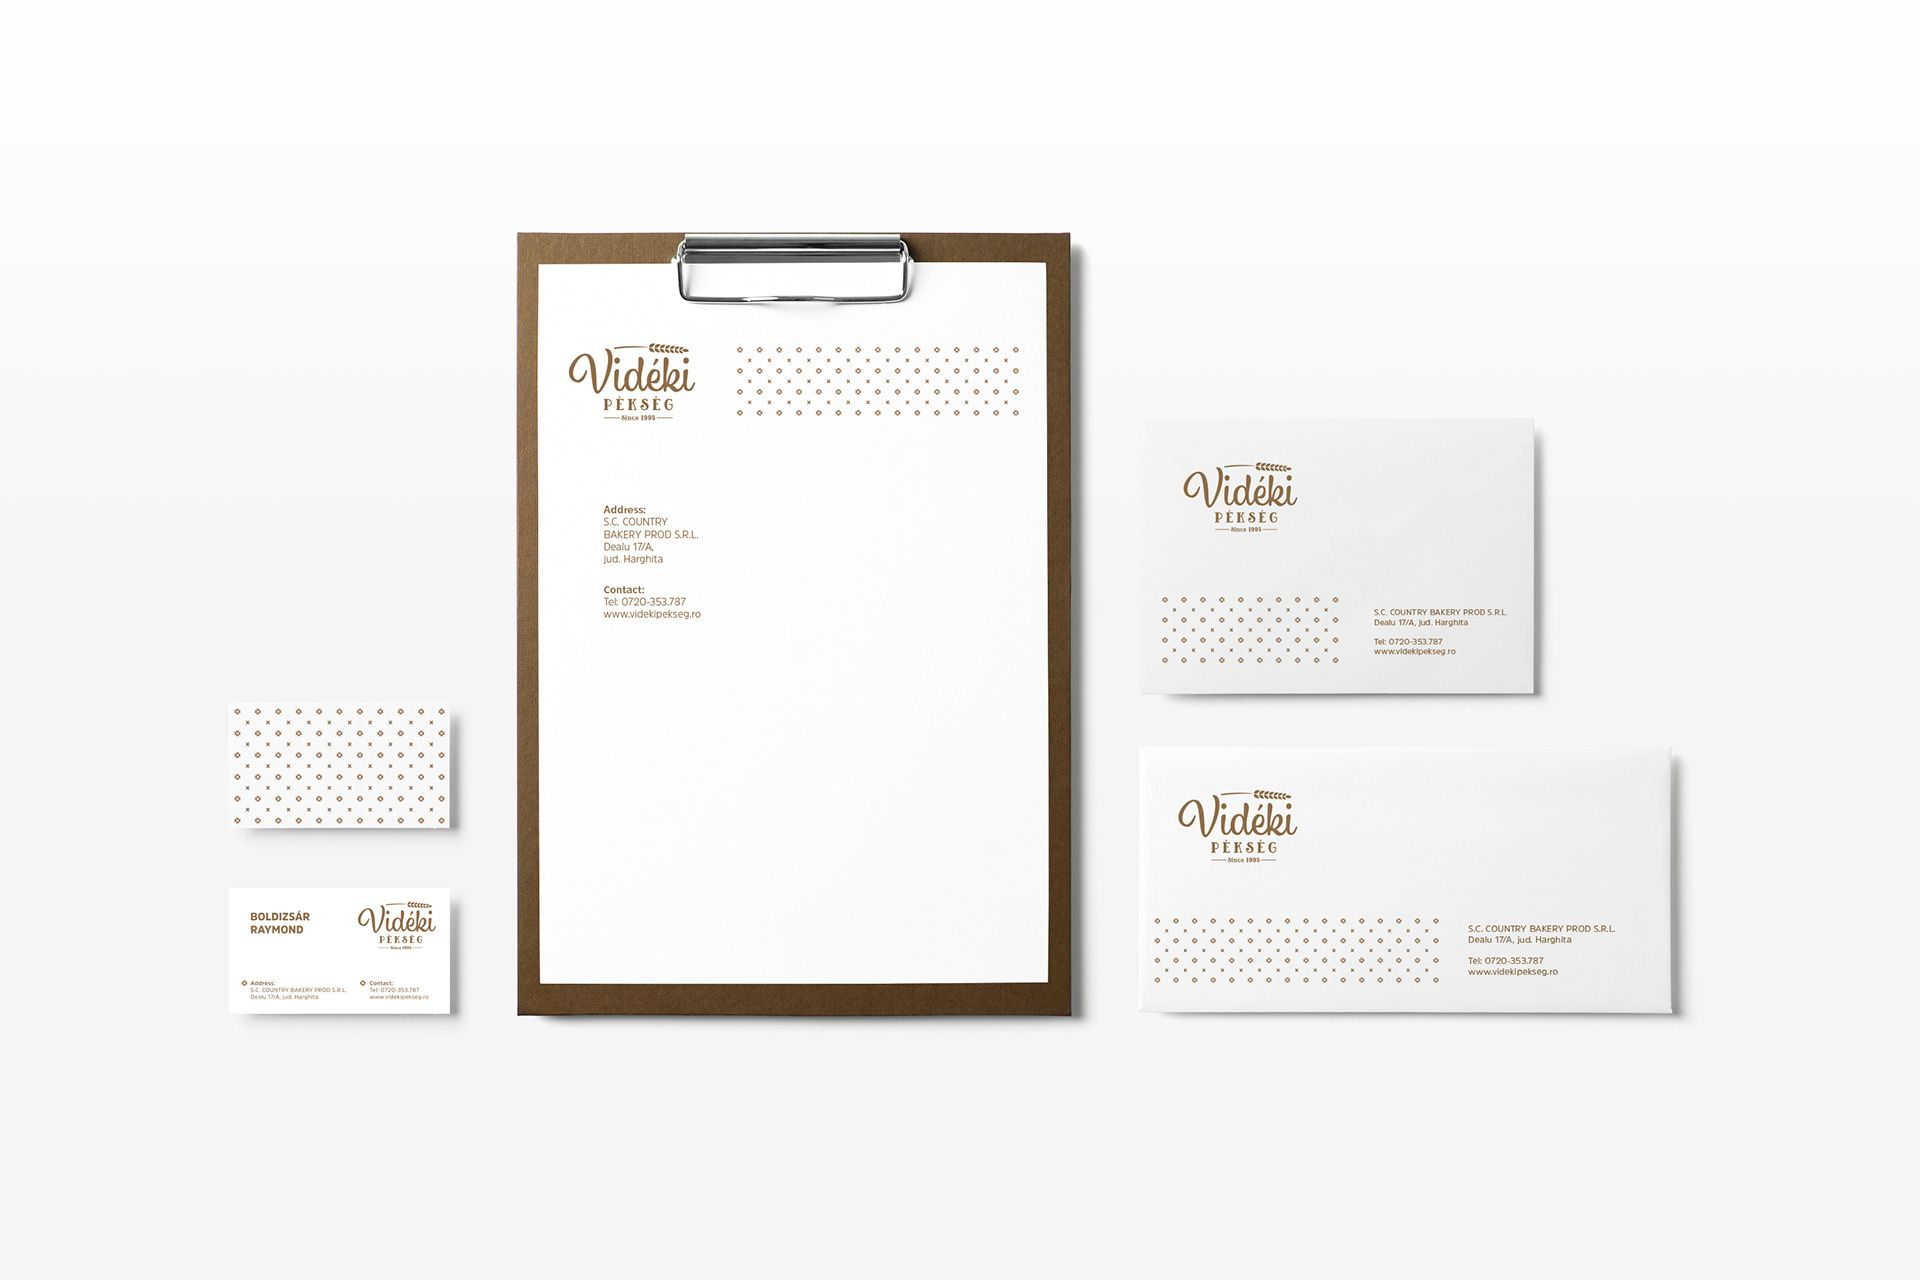 Stationary design for bakery